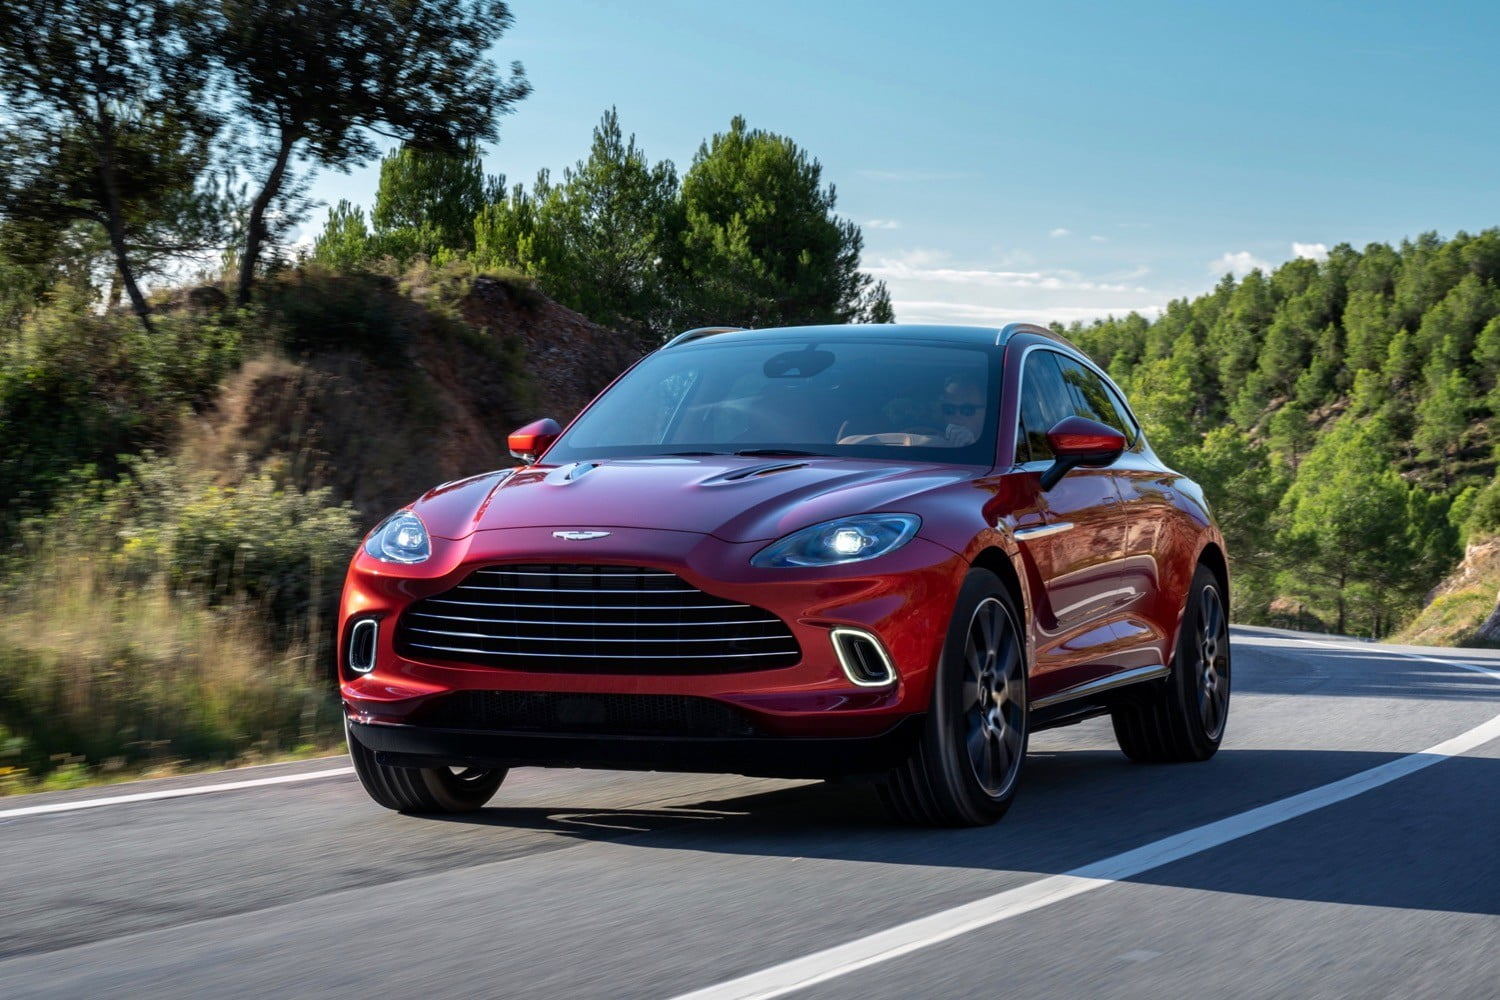 2021 Aston Martin DBX is perfect for a 00 agent with a family